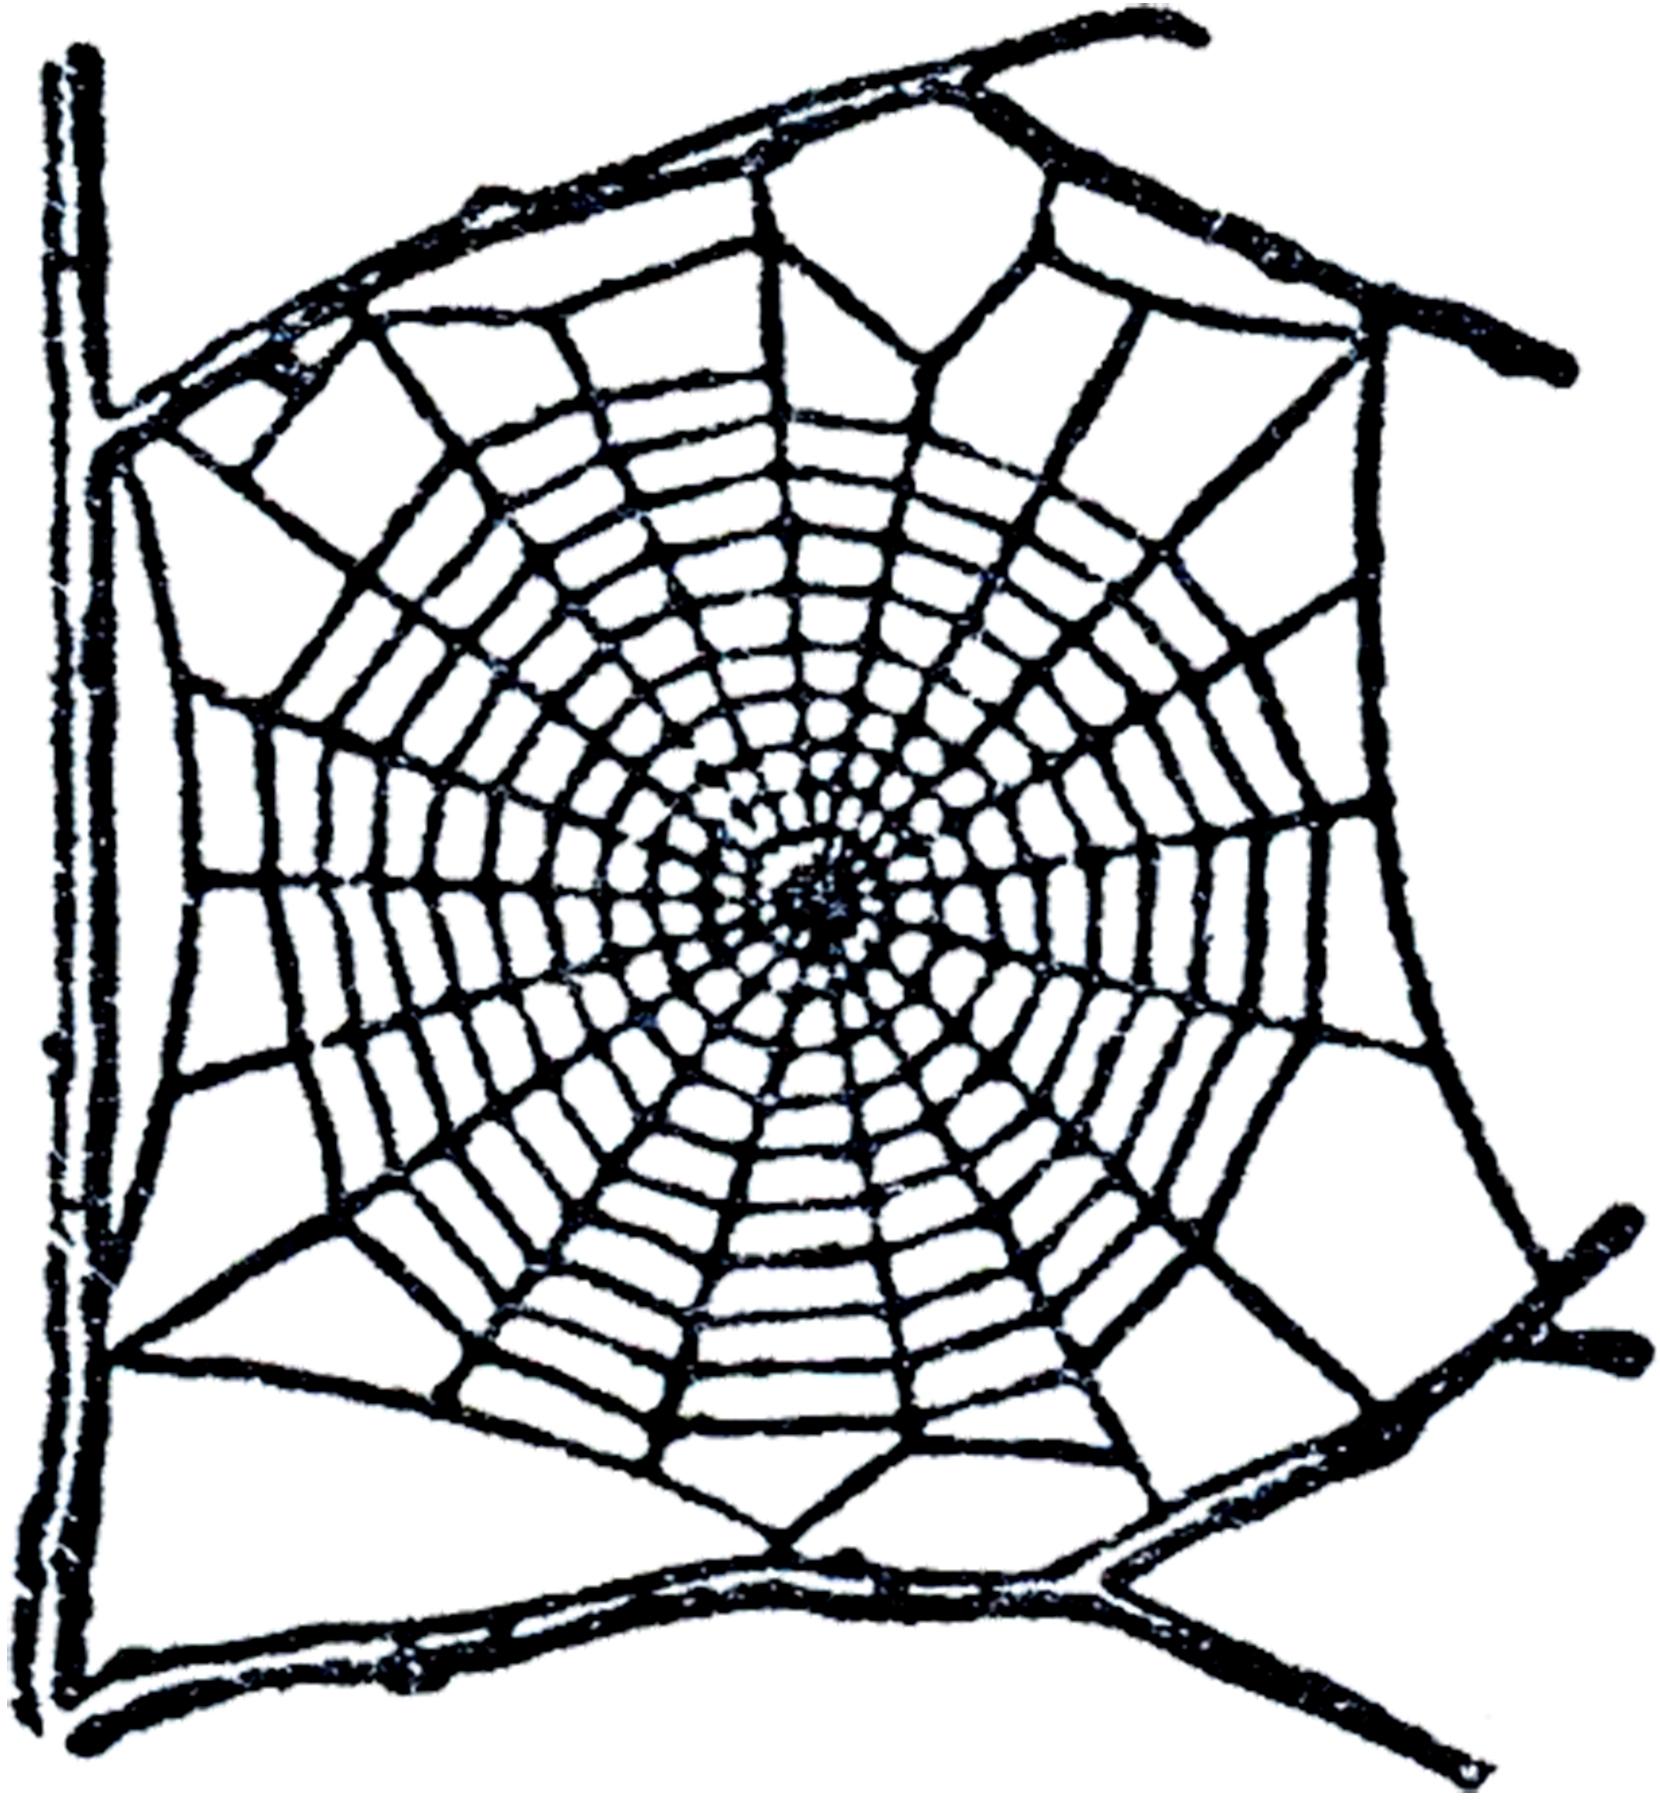 Spider Web Vector - ClipArt Best